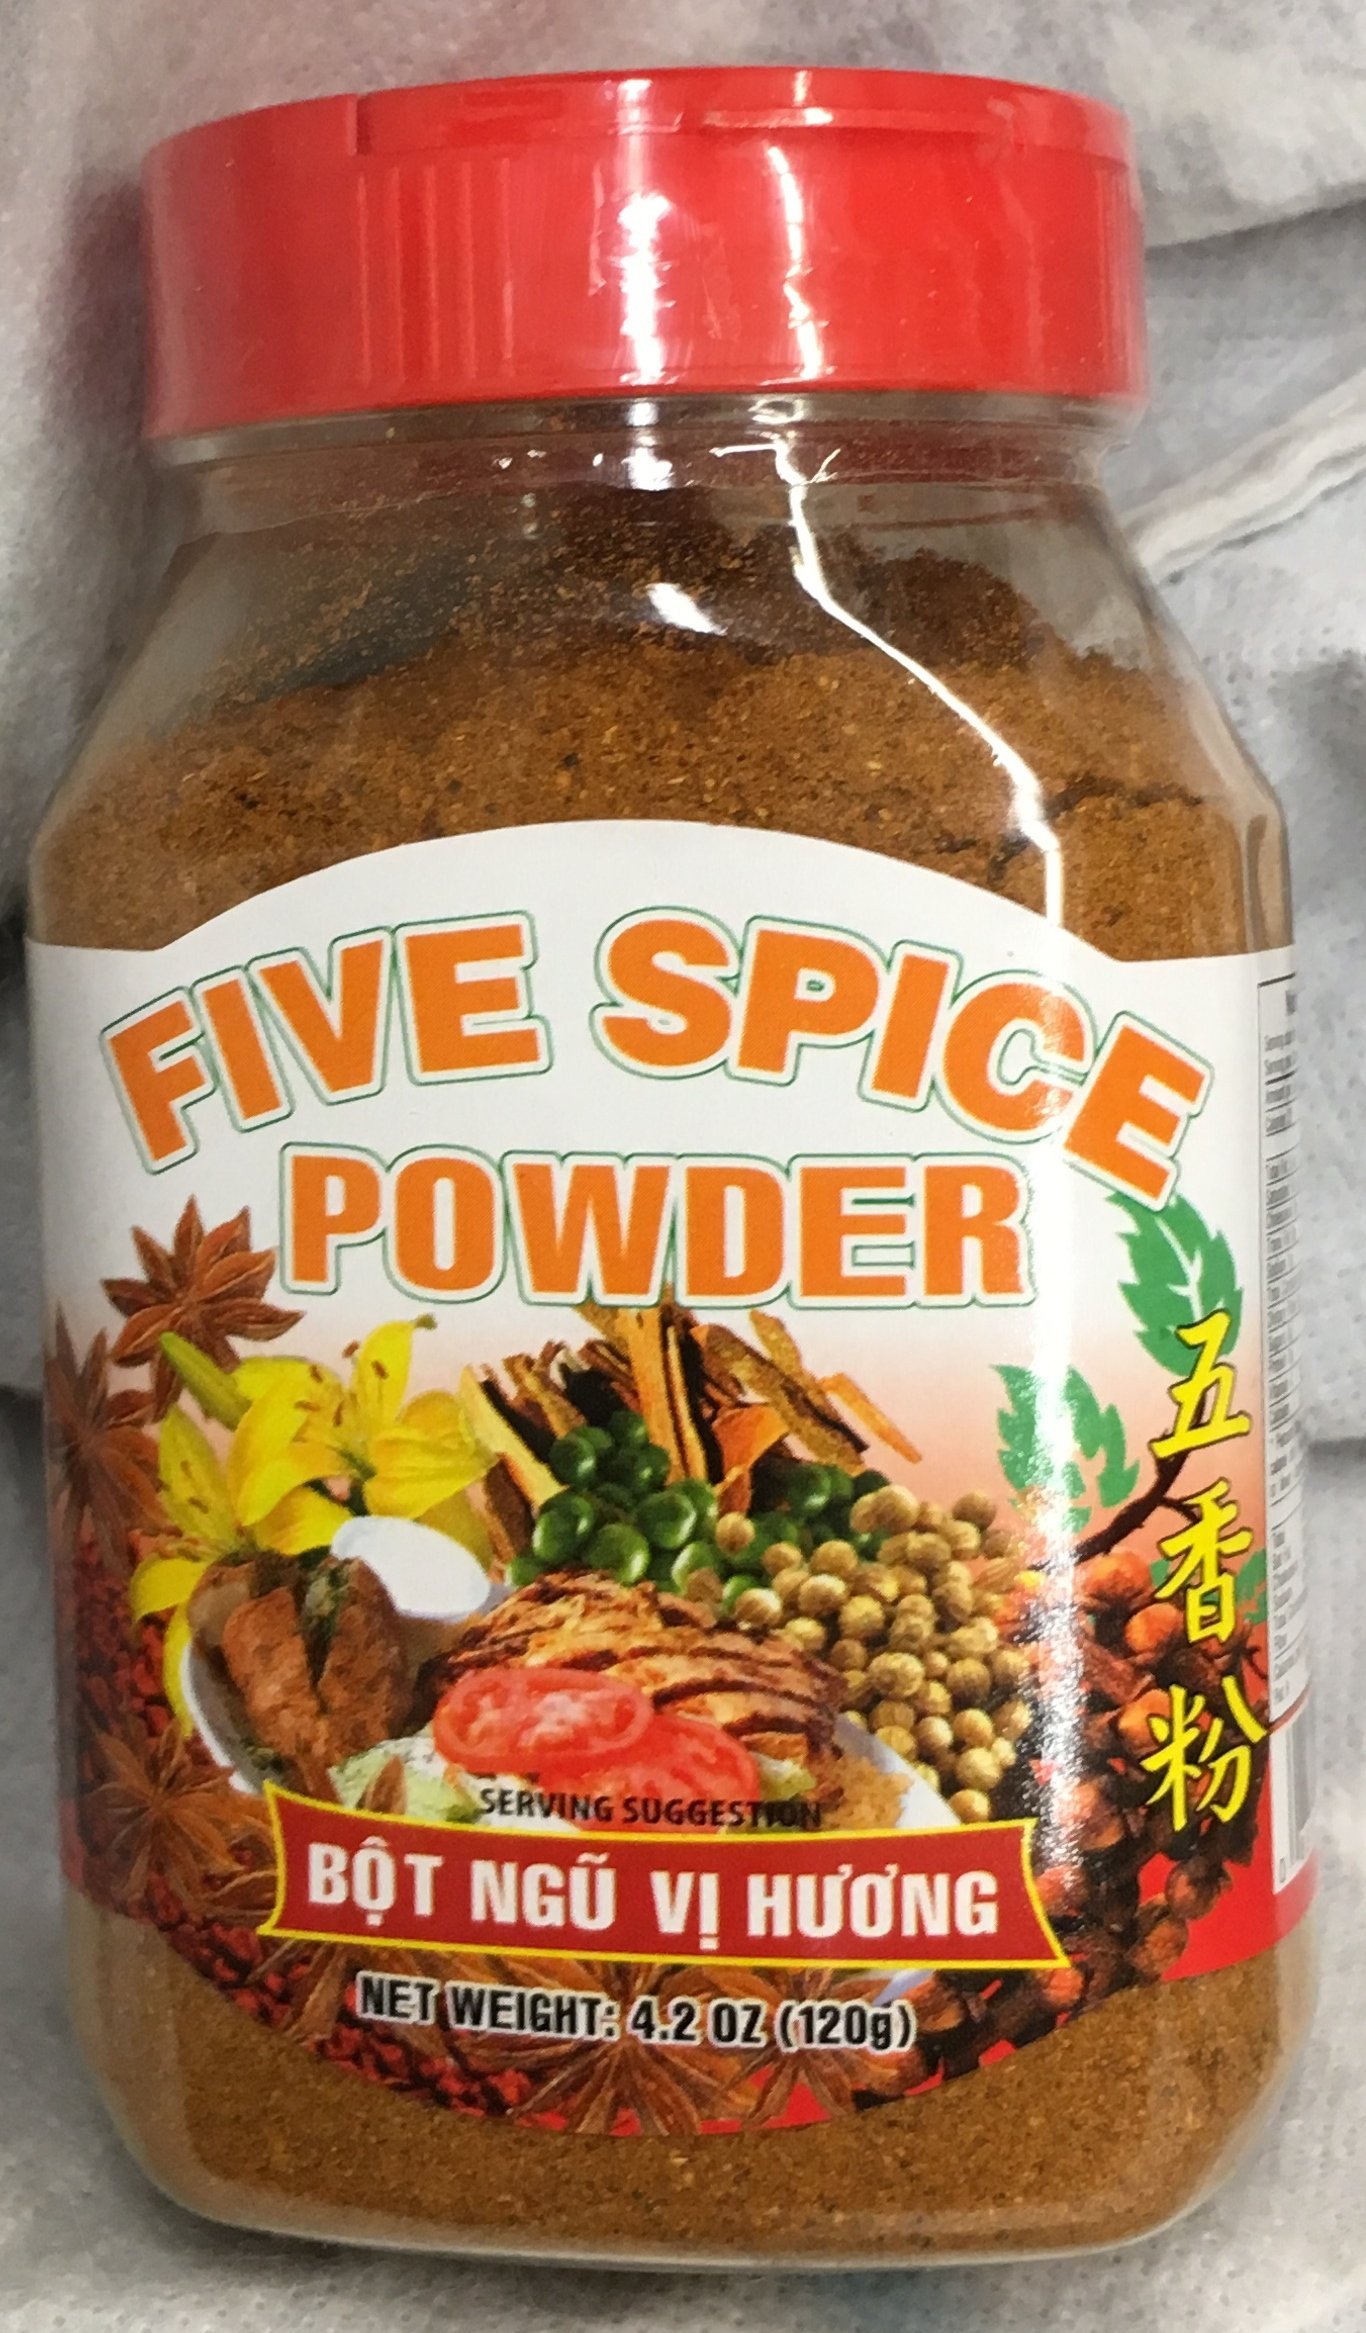 4.2oz Fortuna Five Spice Powder (Bot Ngu Vi Huong), Pack of 1